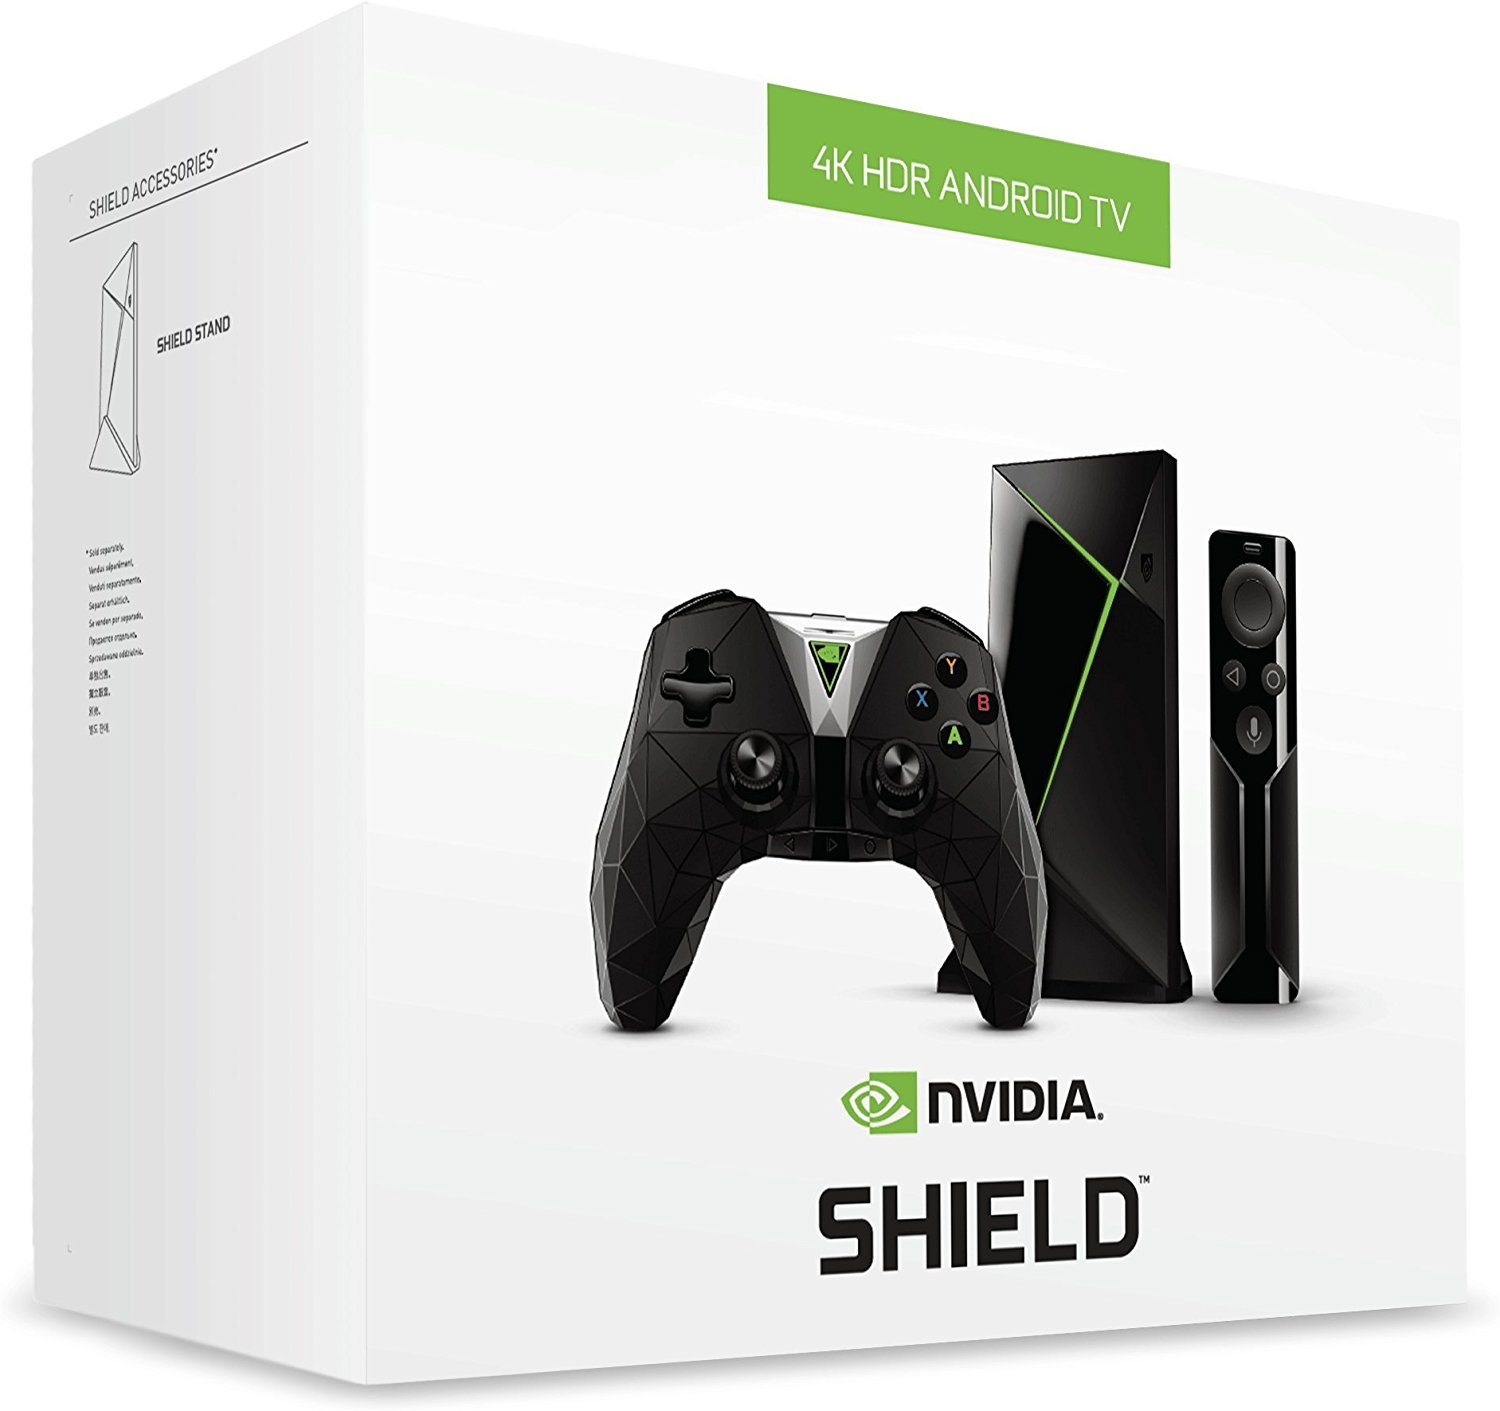 Shield (16GB, 4K HDR, Android TV, 2017) + Gamepad